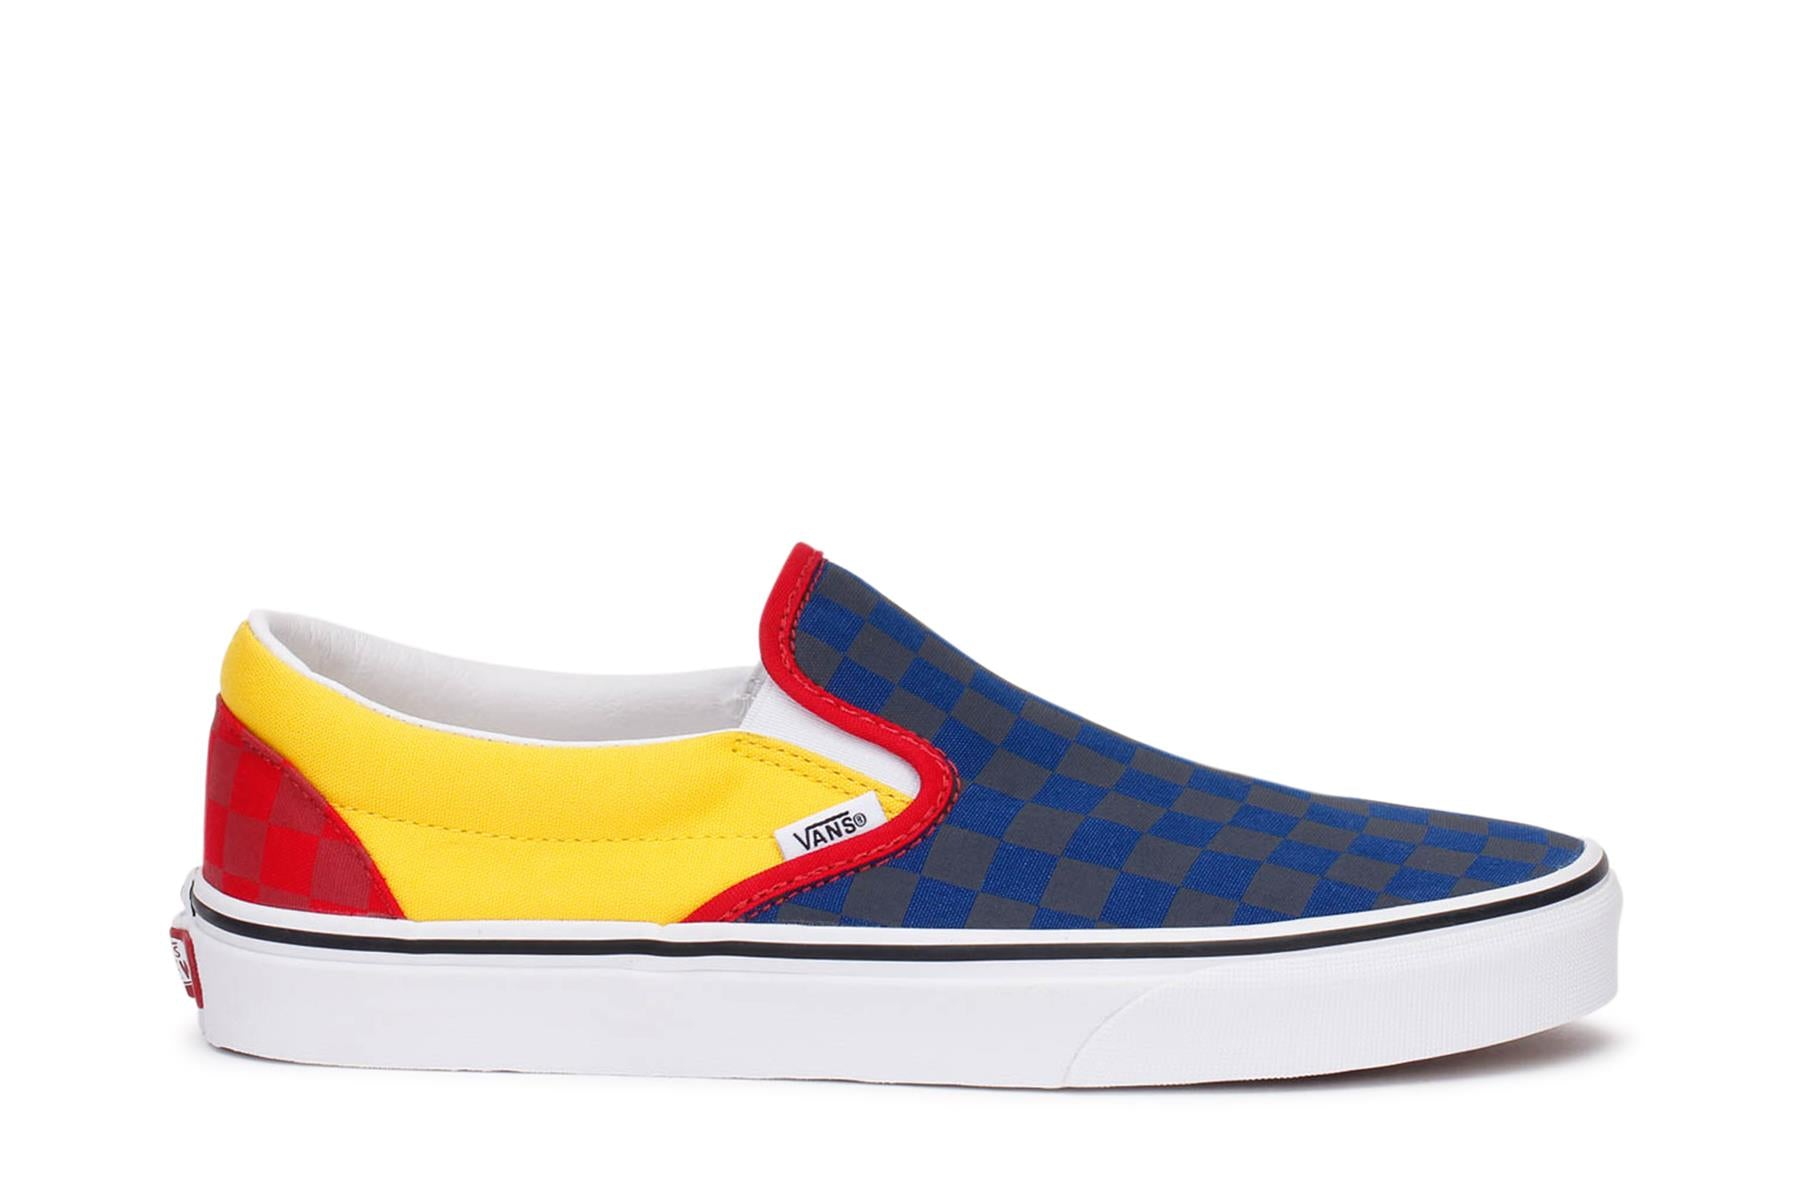 vans-mens-classic-slip-on-sneakers-rally-navy-yellow-red-vn0a4bv3v3d-main